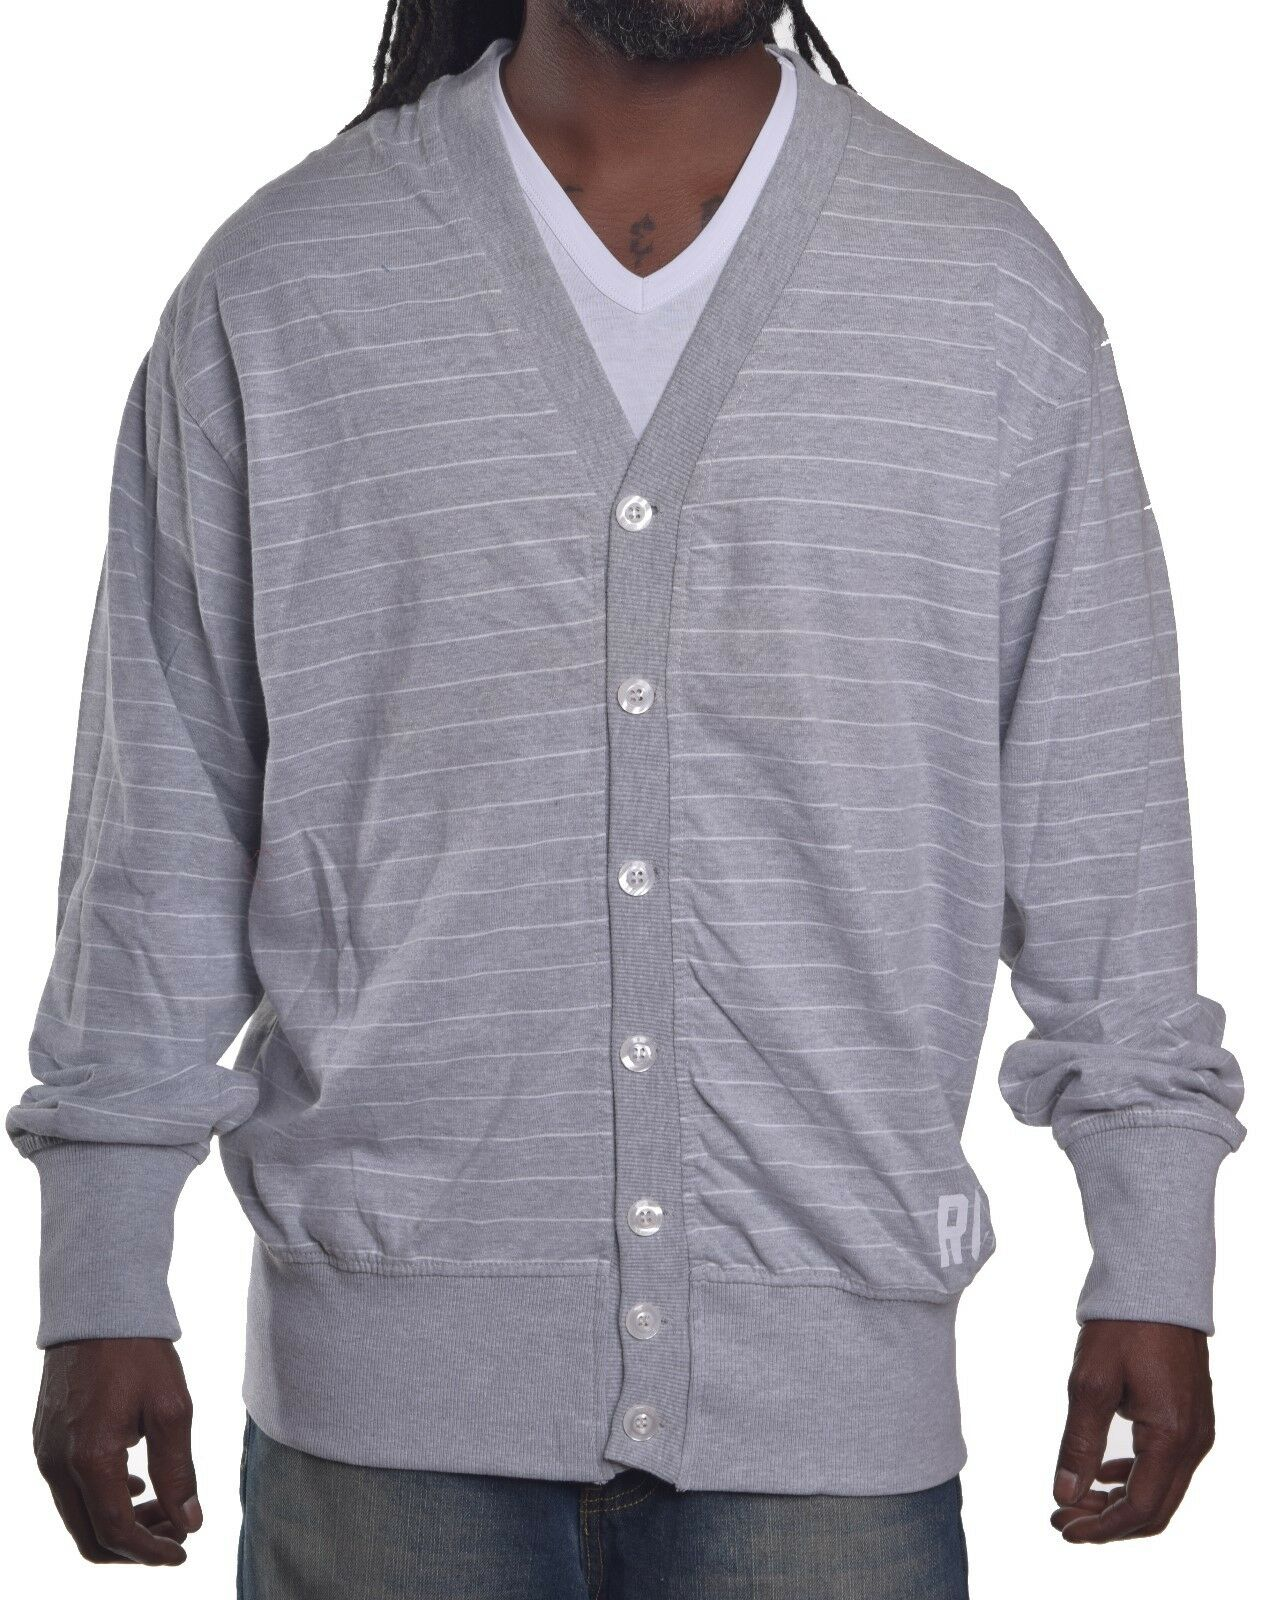 Rocawear Men's Casual Cardigan Sweater Choose Size & Color M ...